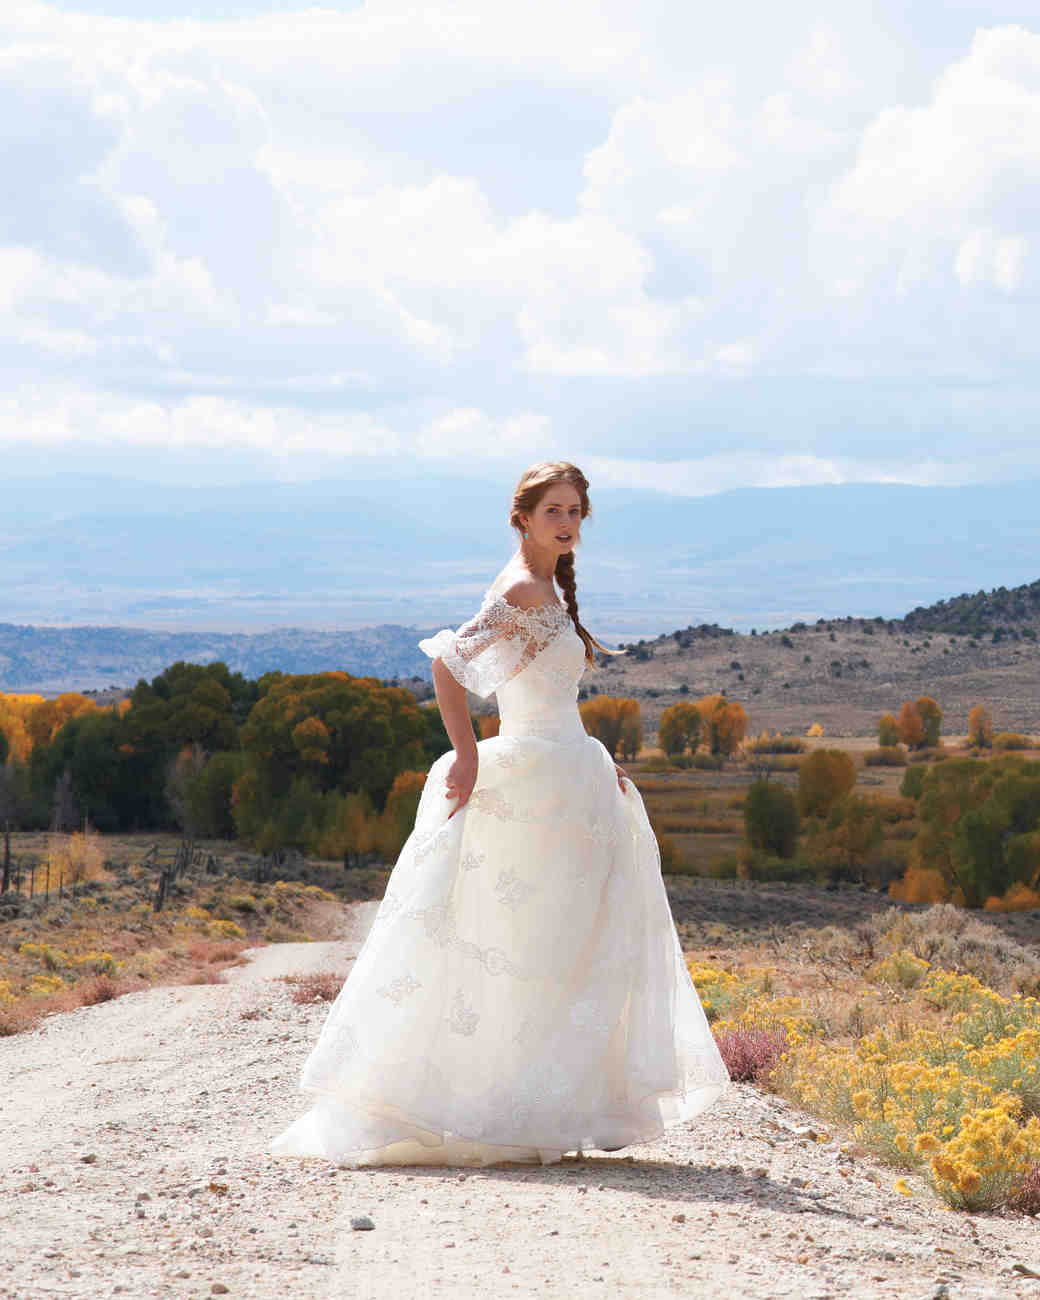 Outdoor Wedding Outfit Ideas: The Best Outdoor Wedding Dresses